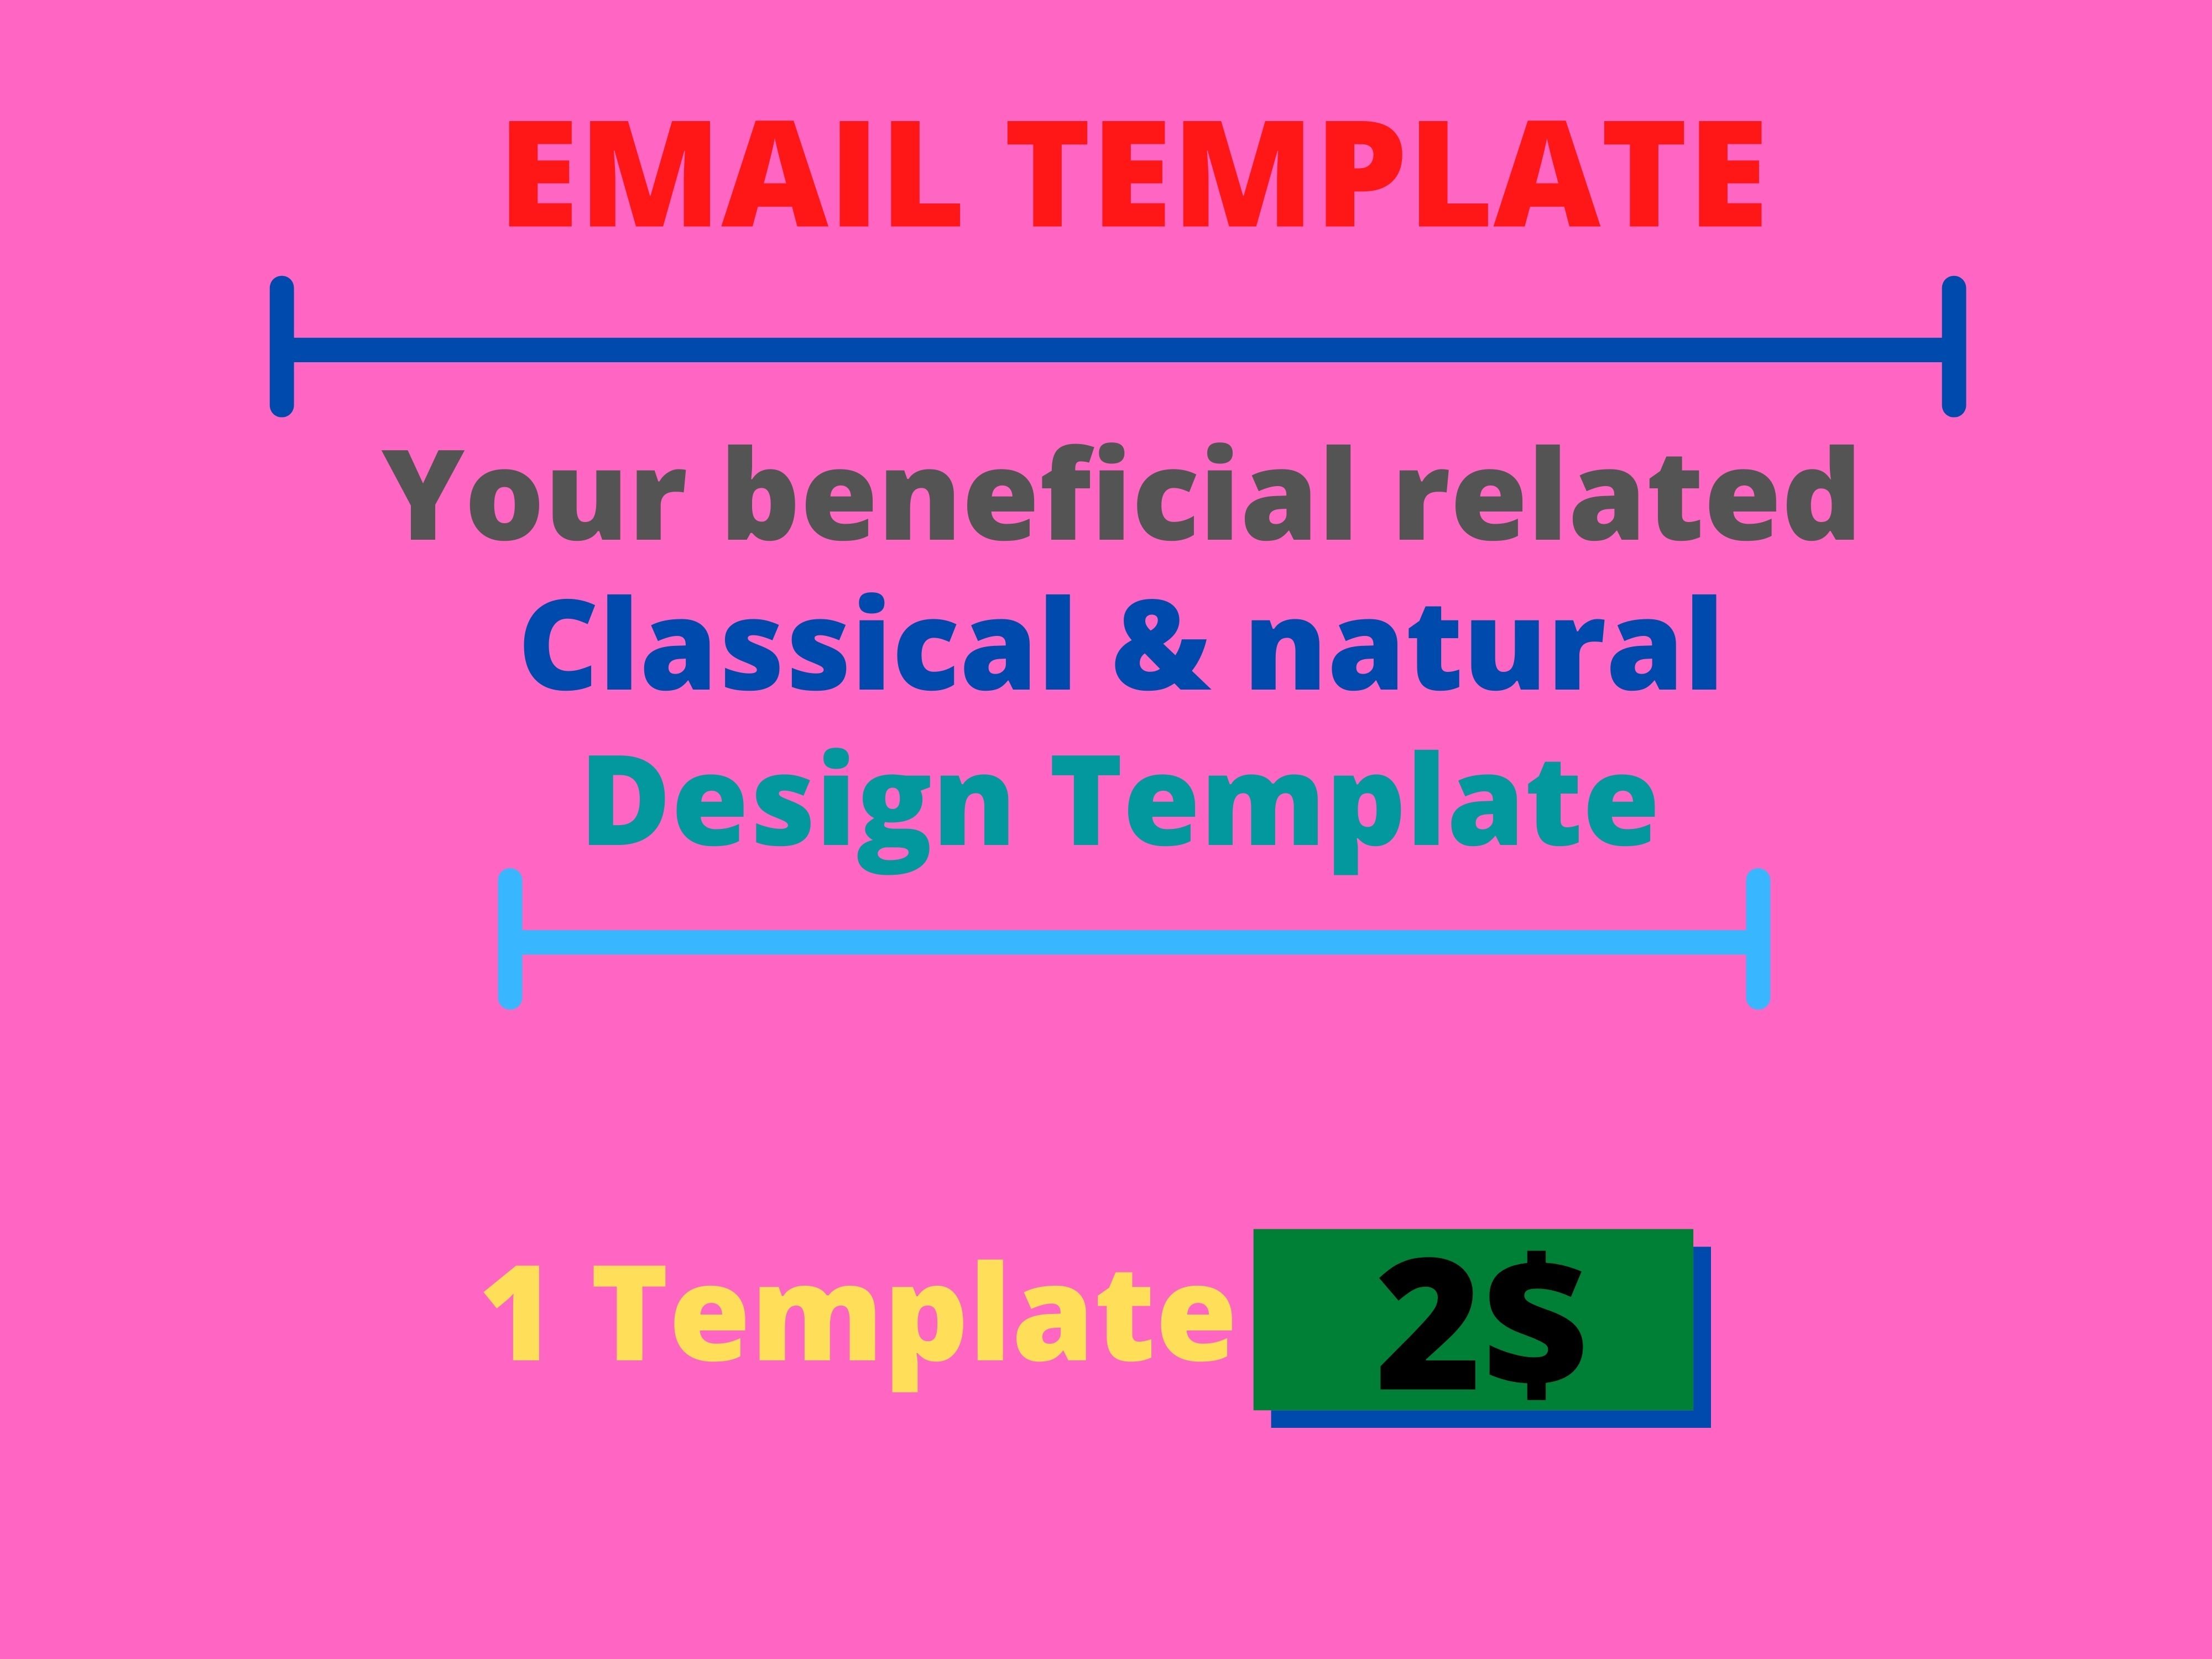 I will present you beneficial,  Classic & natural Design Template.